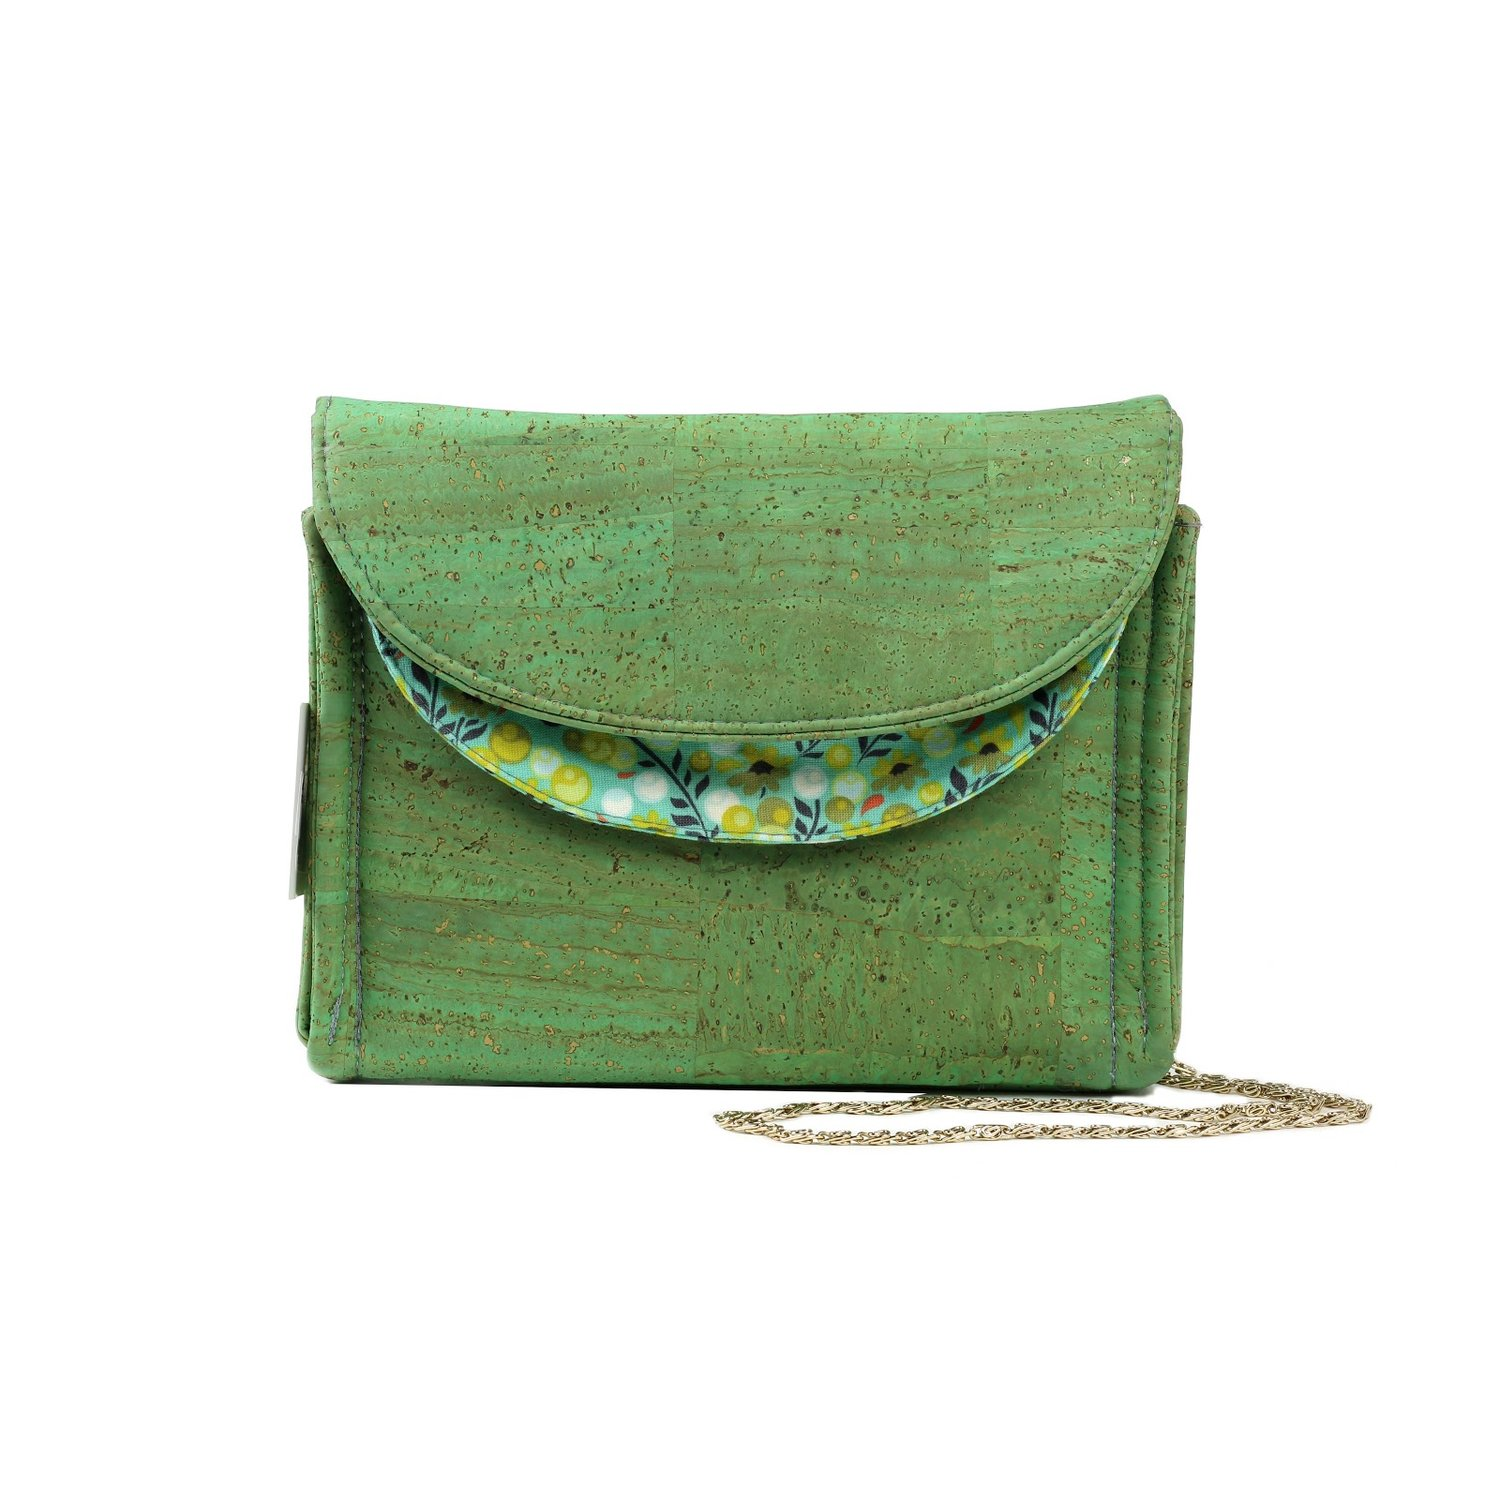 e592d9cadbd MHD_greencorkstarlet_1.jpg. sold out. Quick View. Double Flap Starlet  Crossbody Clutch ...